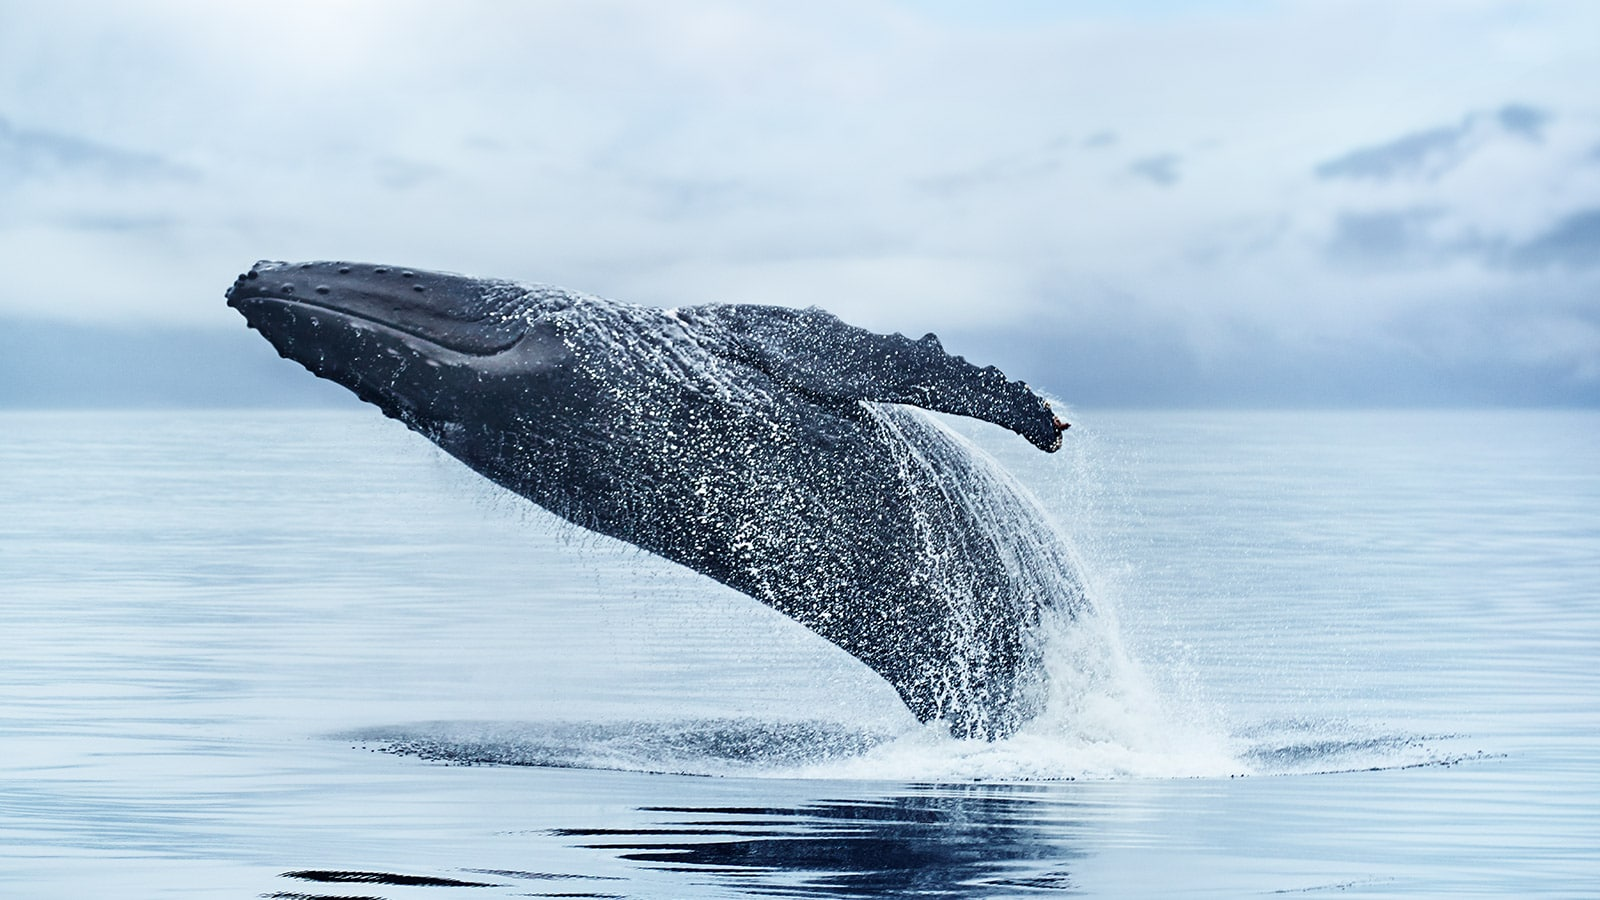 A humpback whale breaching the waters of Alaska